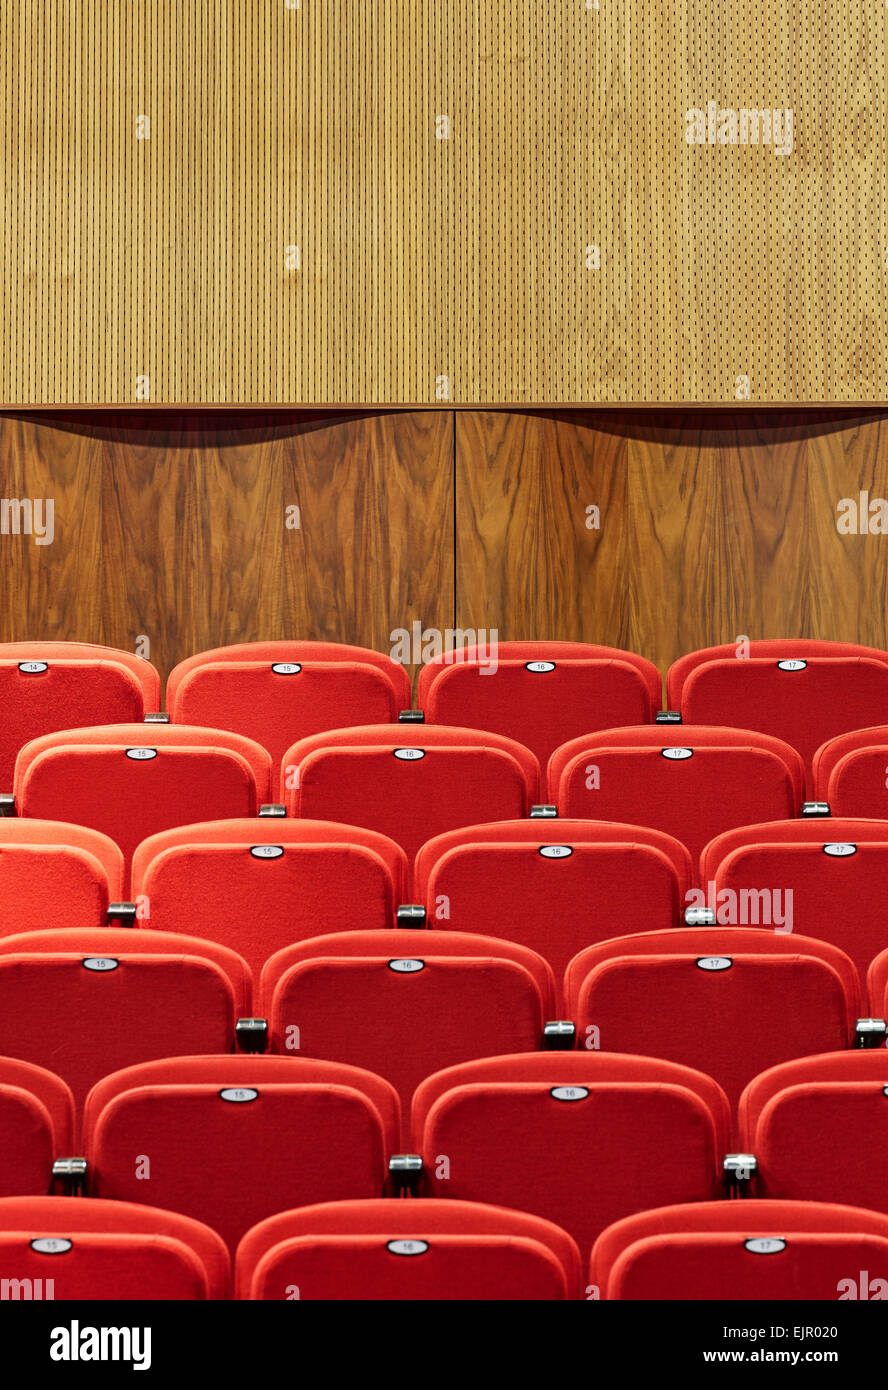 Detailed view of retractable bleachers and acoustic walnut baffle. Lady Eleanor Holles School, Hampton, United Kingdom. - Stock Image